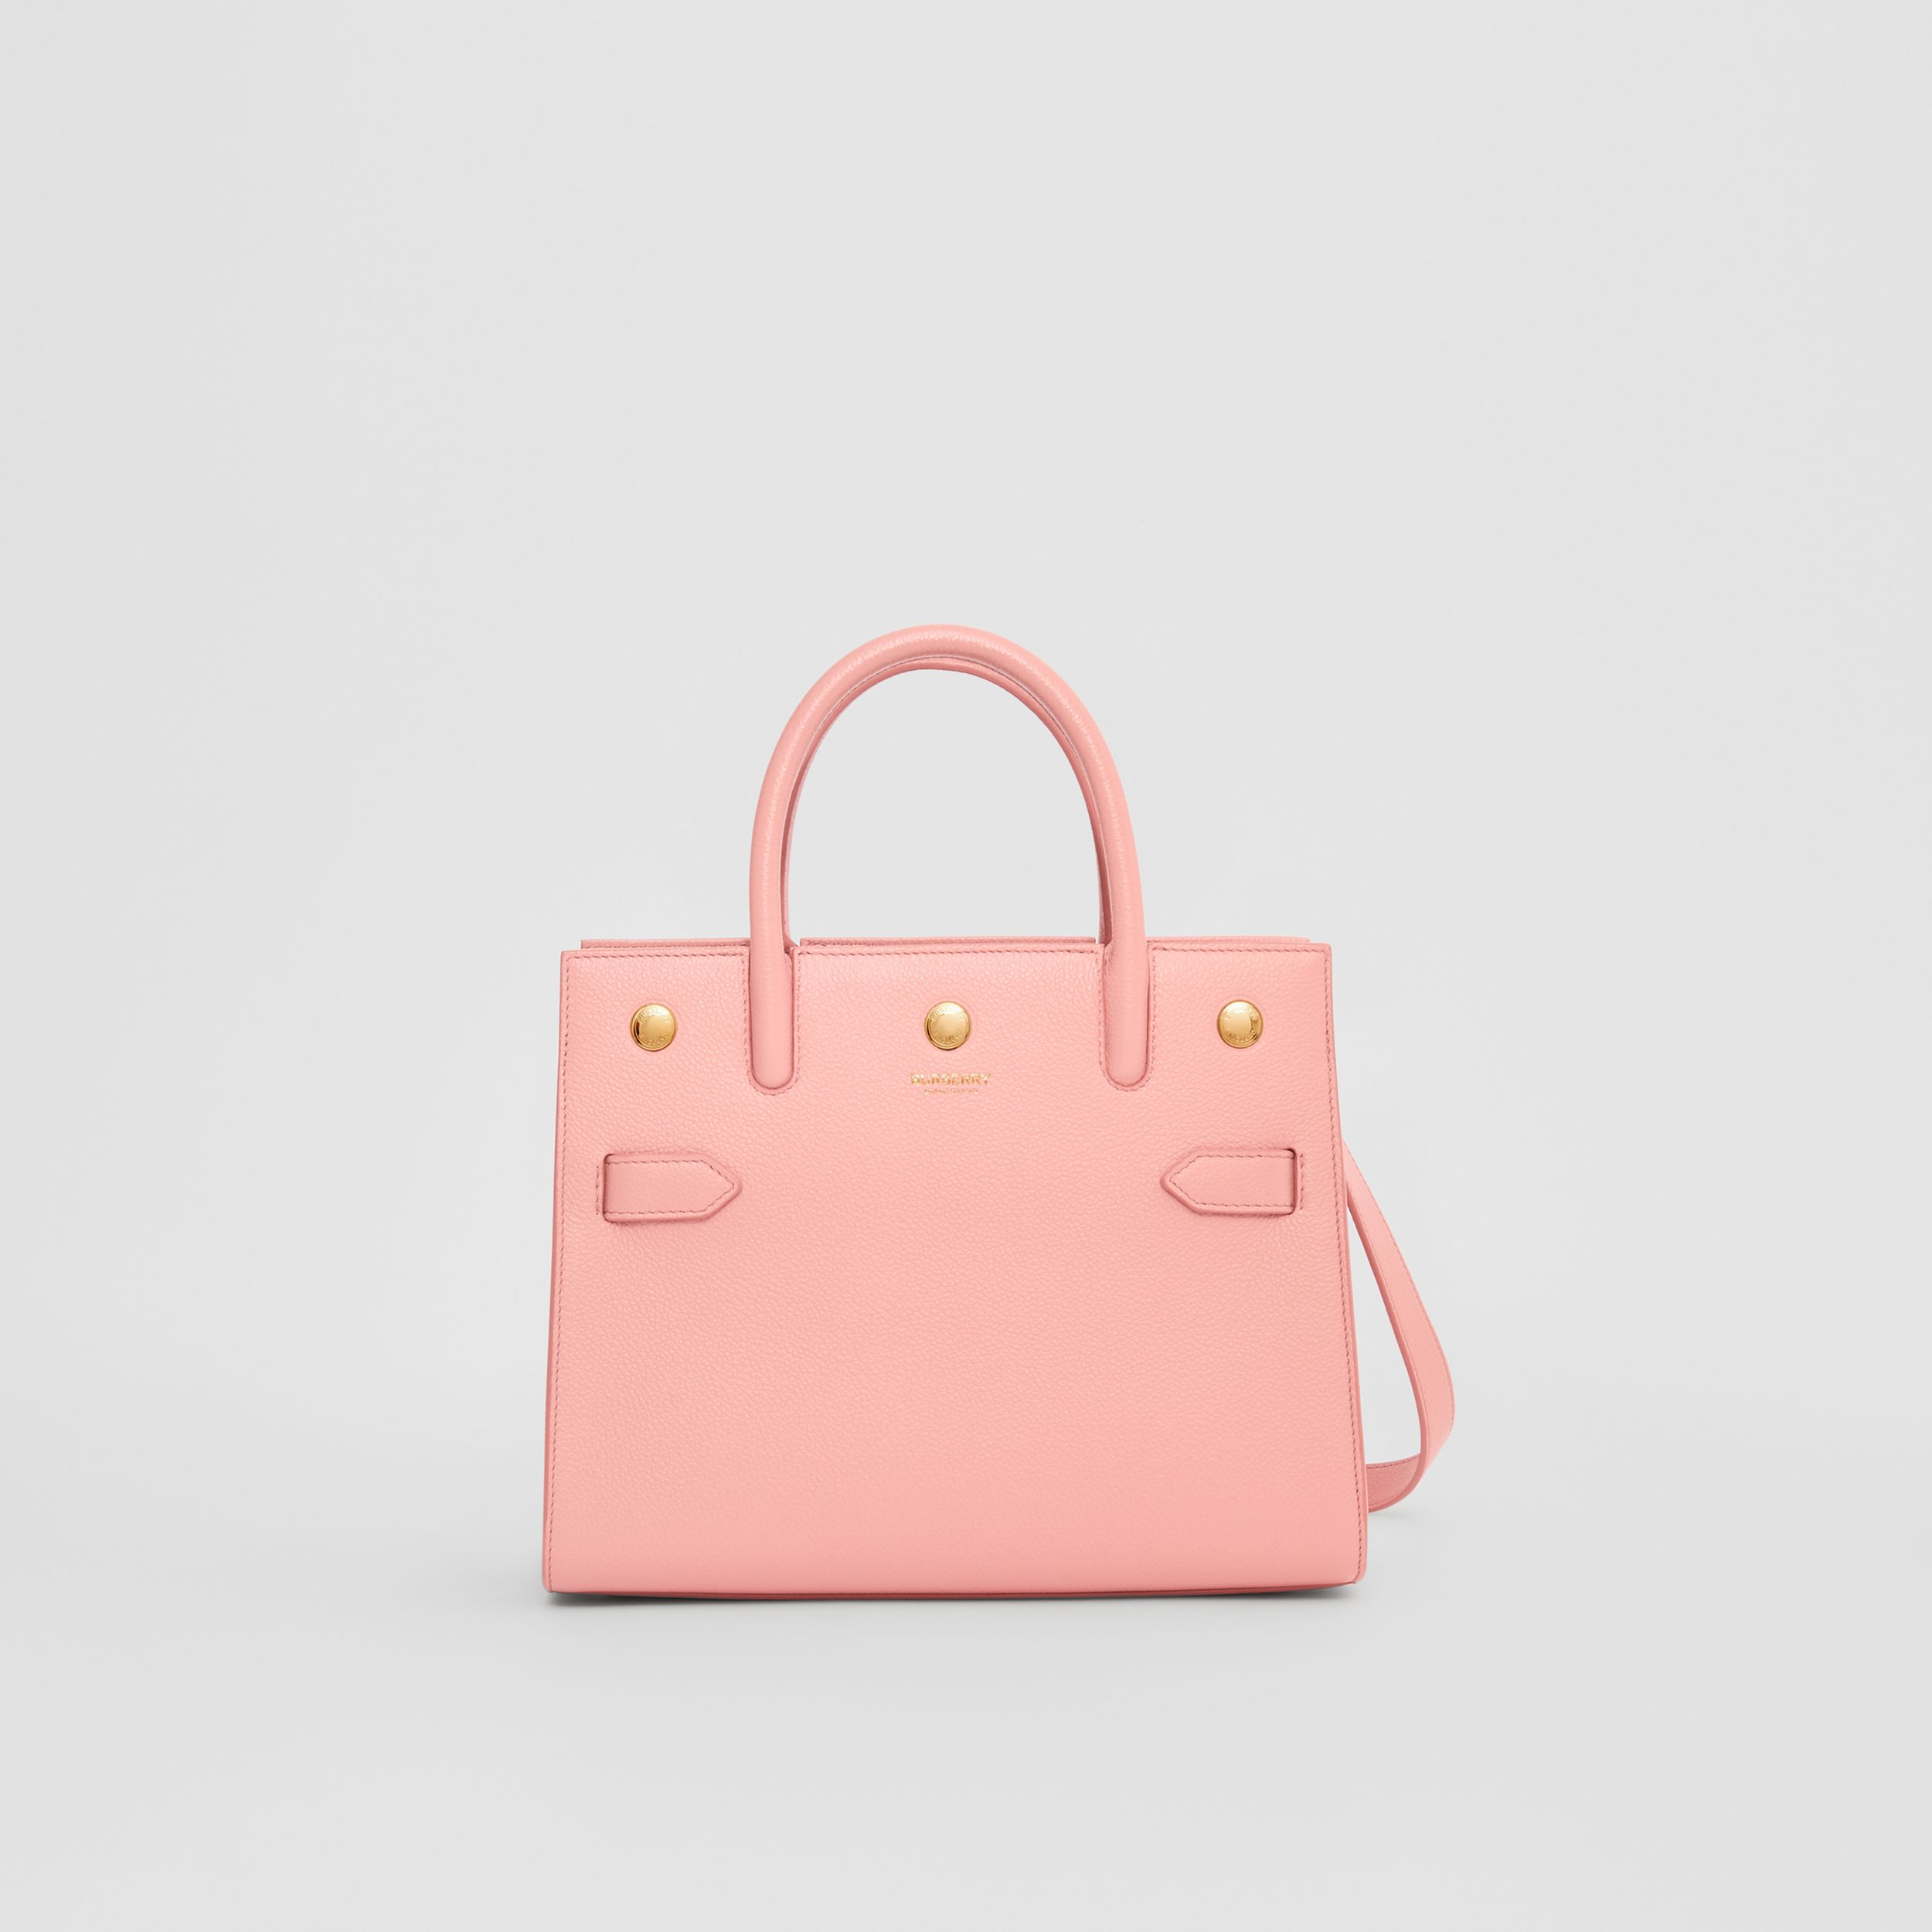 Mini Leather Two-handle Title Bag in Blush Pink - Women | Burberry - 1